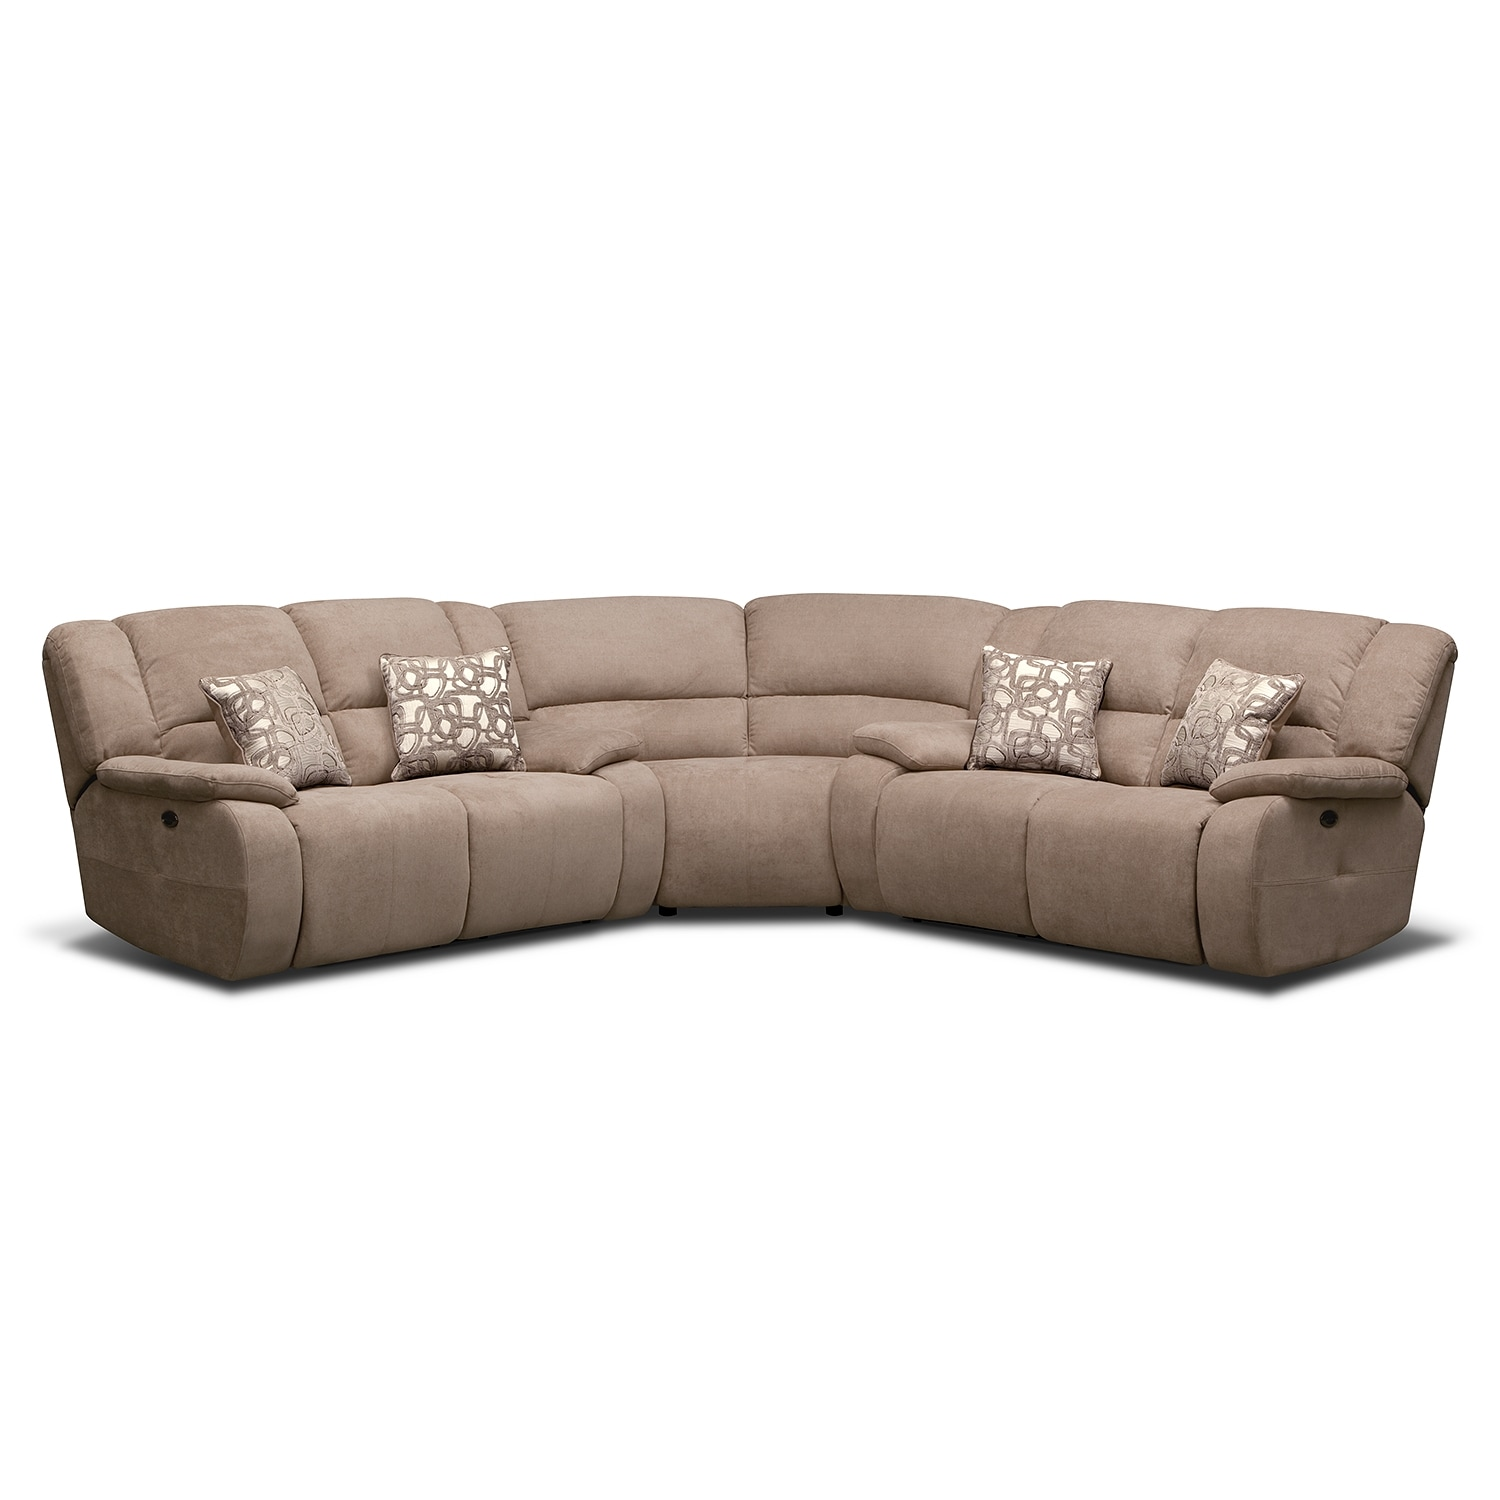 Living Room Furniture - Destin Beige II 3 Pc. Power Reclining Sectional (Alternate II)